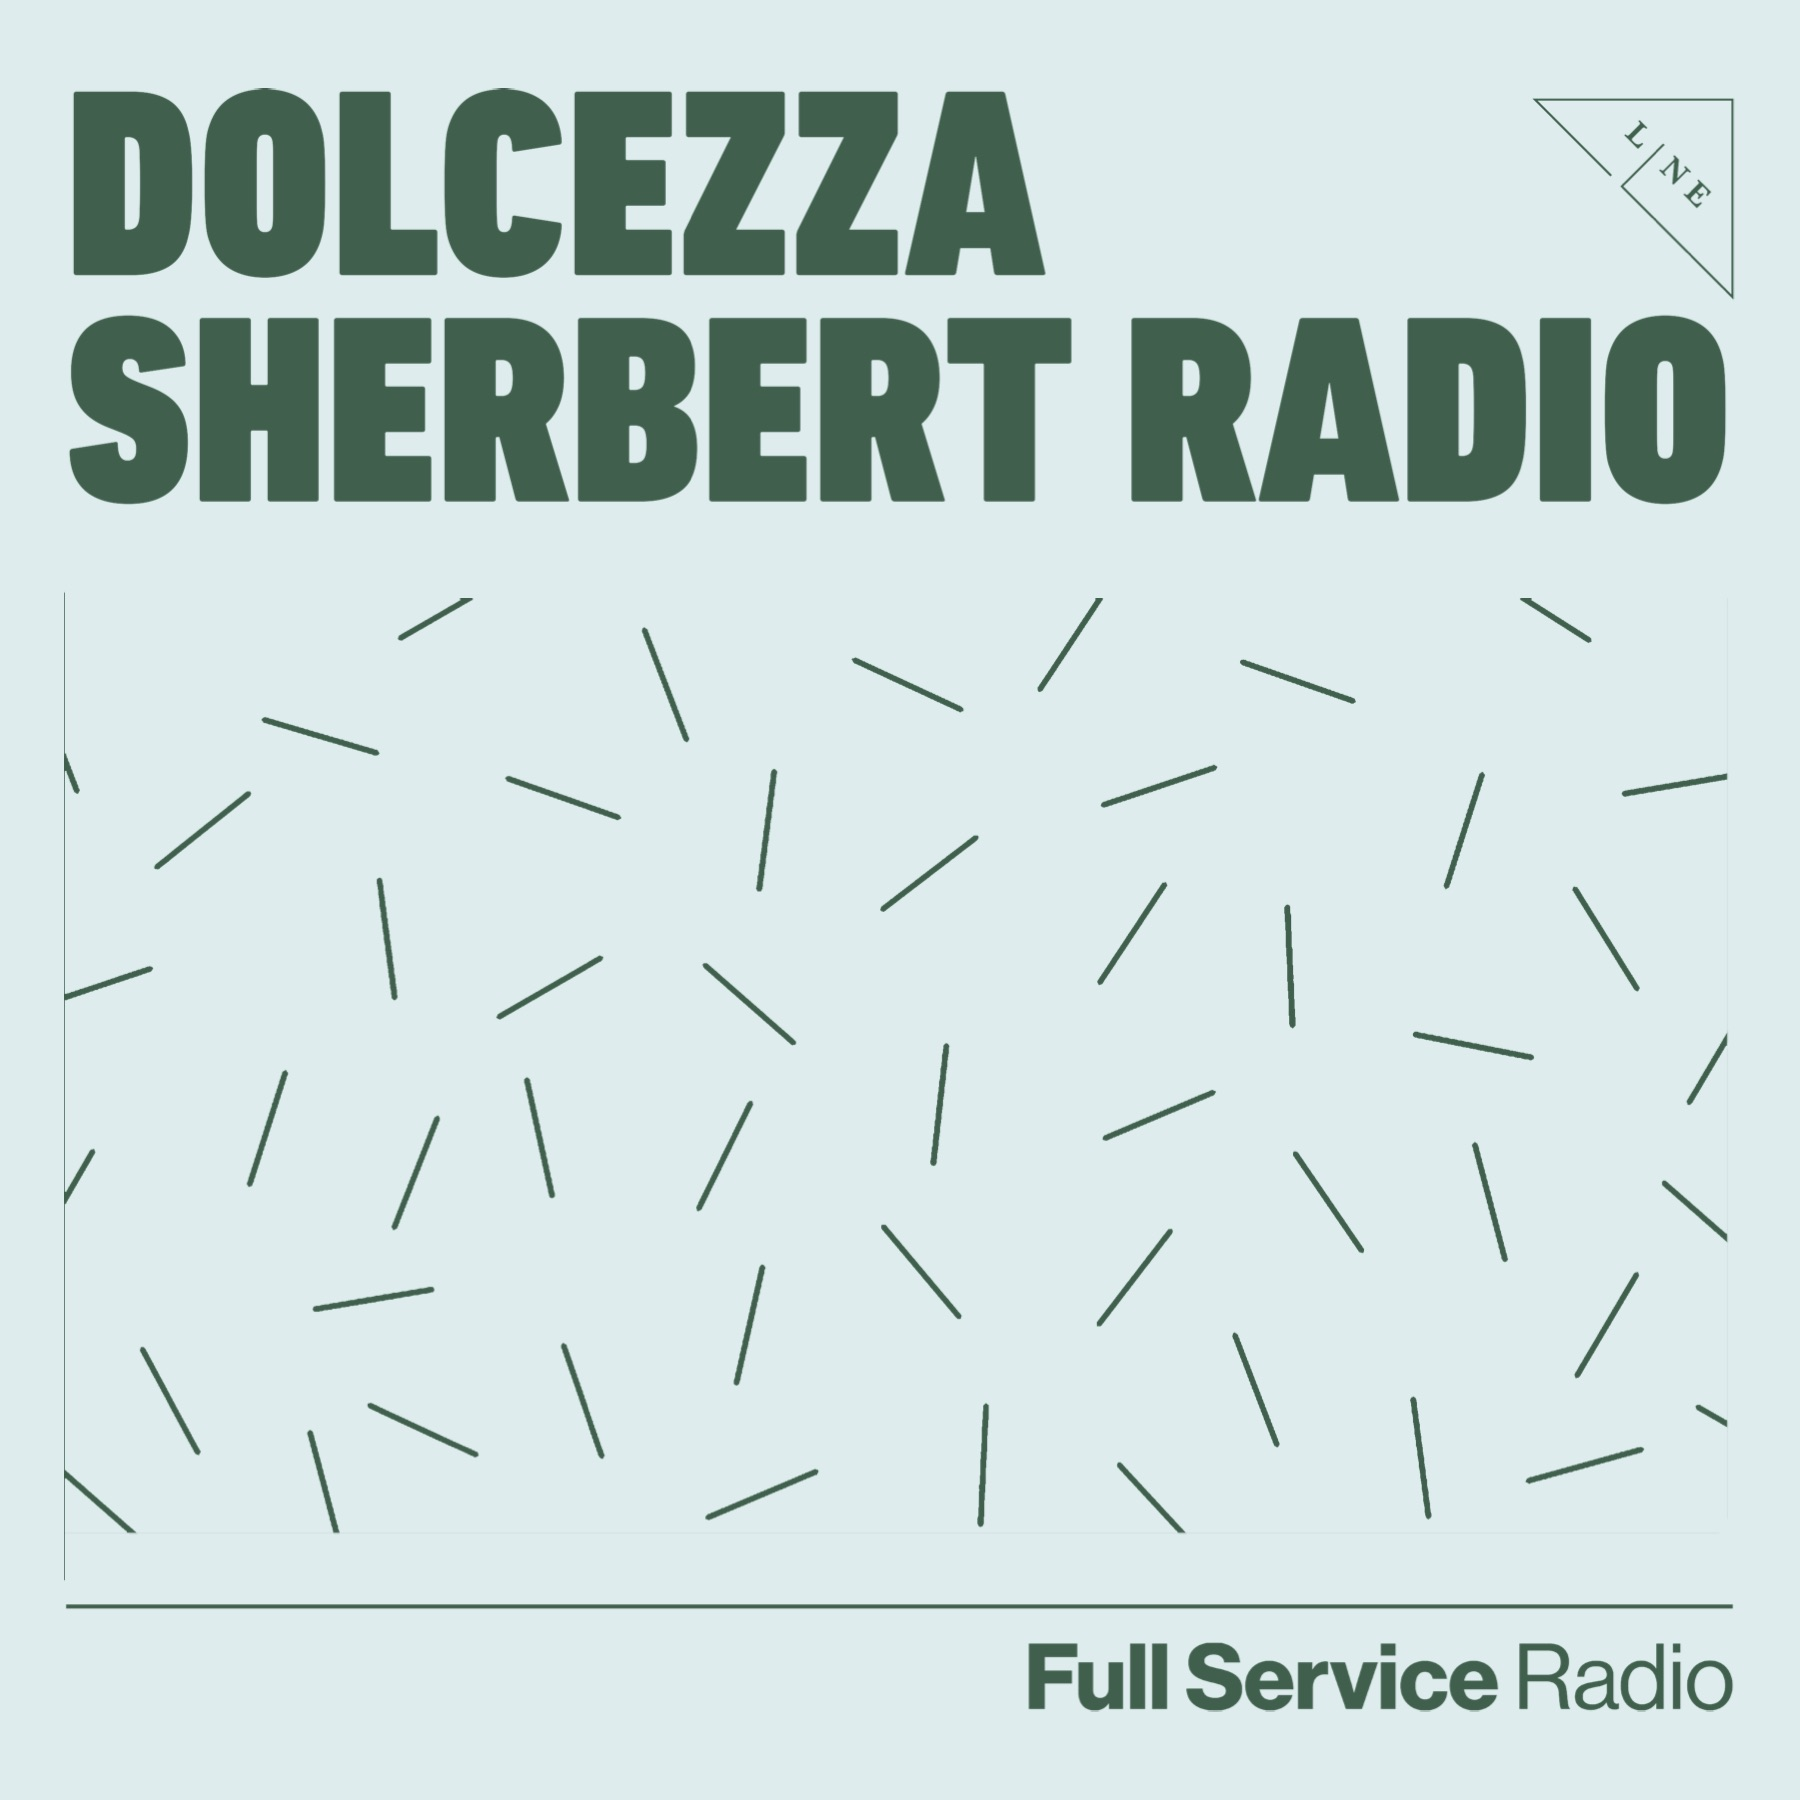 Dolcezza 20sherbert 20radio 20final